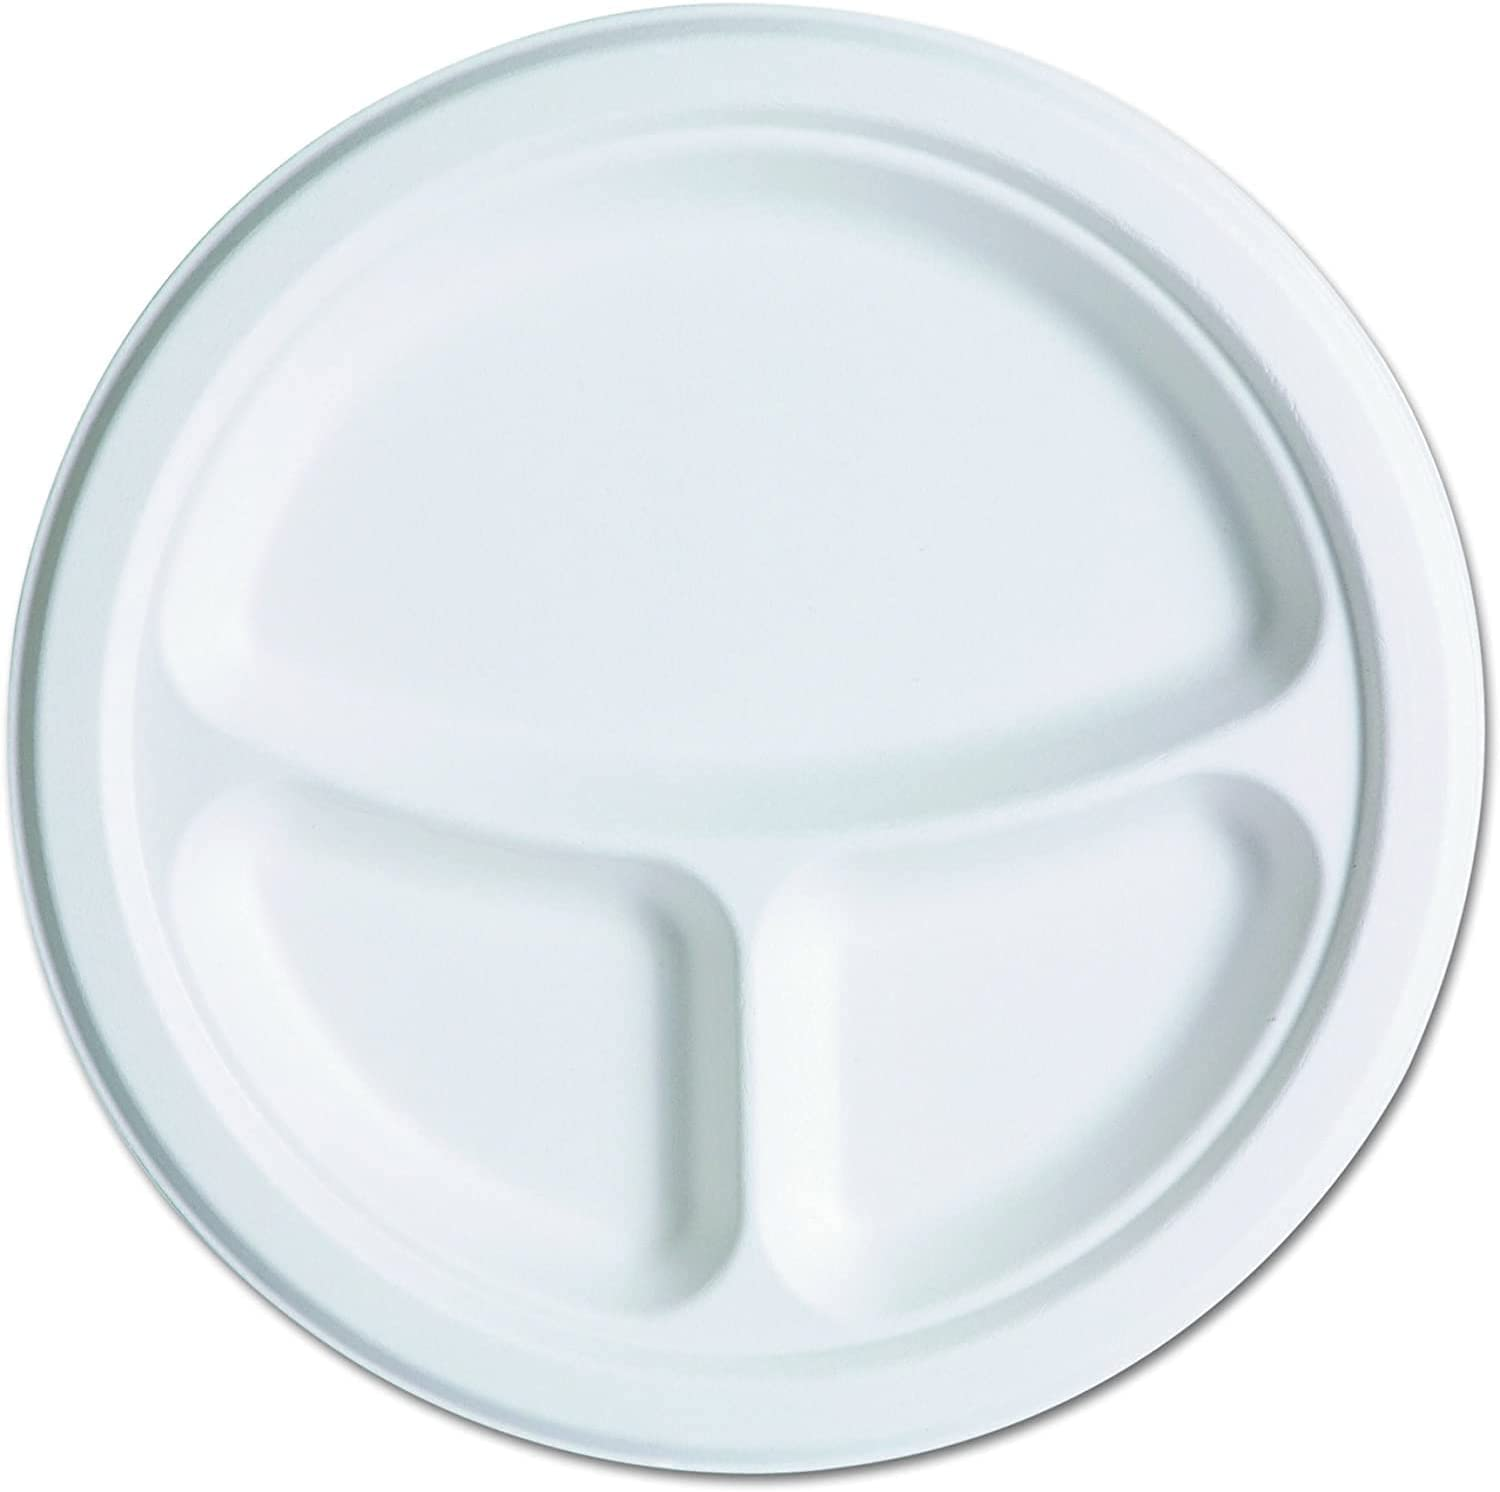 Eco-Products Max 90% OFF - Renewable Deluxe Compostable Plates Club Sugarcane Pac